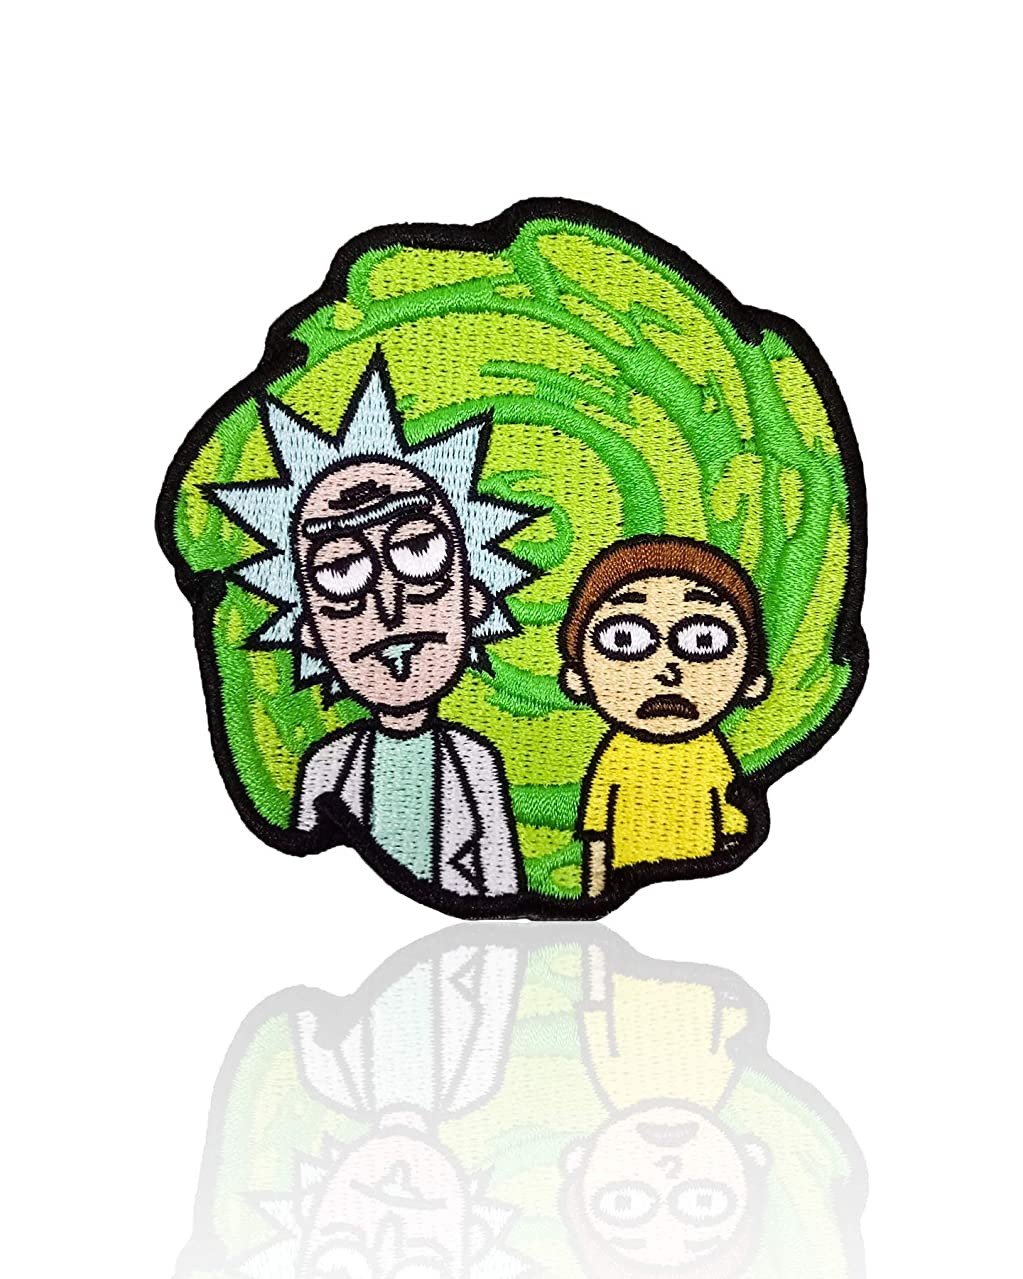 Rick & Morty Patch Iron on & Sew on Cartoon Green Swirl Embroidered Applique Decoration DIY Craft for Tshirts, Denim Jackets, Hats, Bags